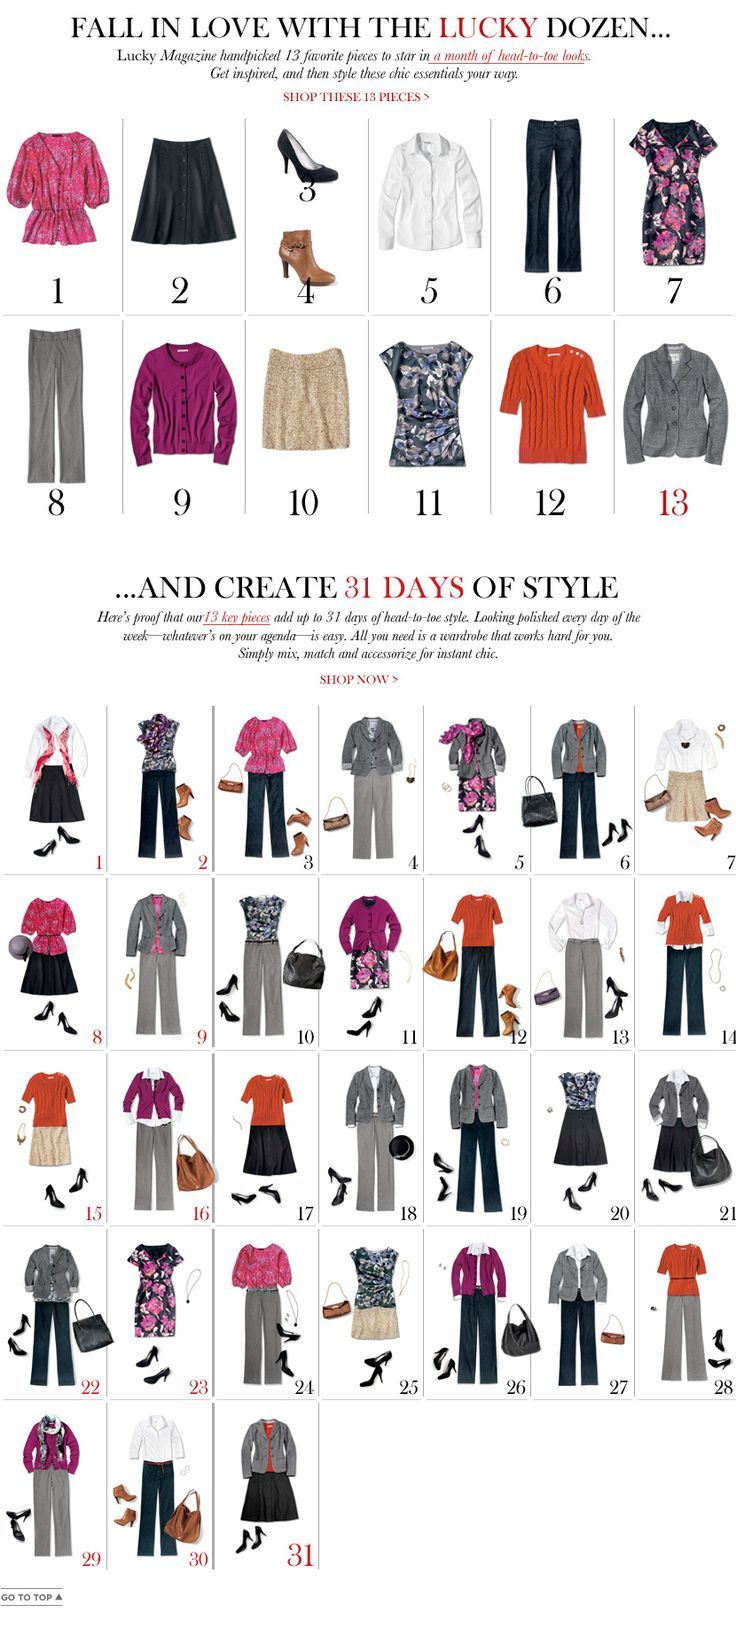 Wardrobe ideas - 30 outfits from 13 pieces.